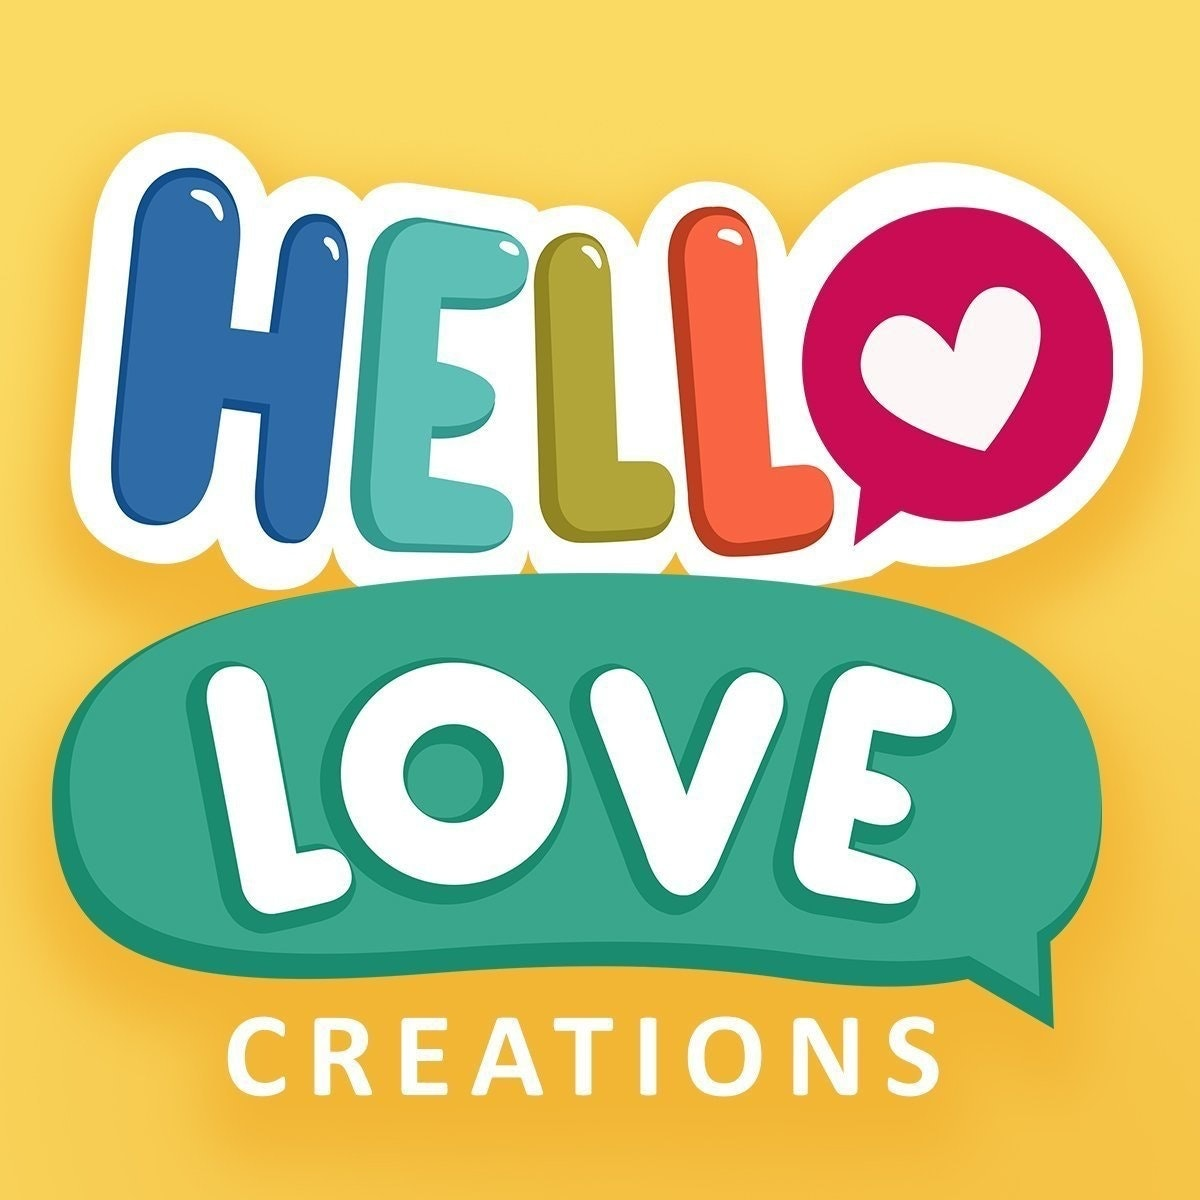 Hello Love Creations